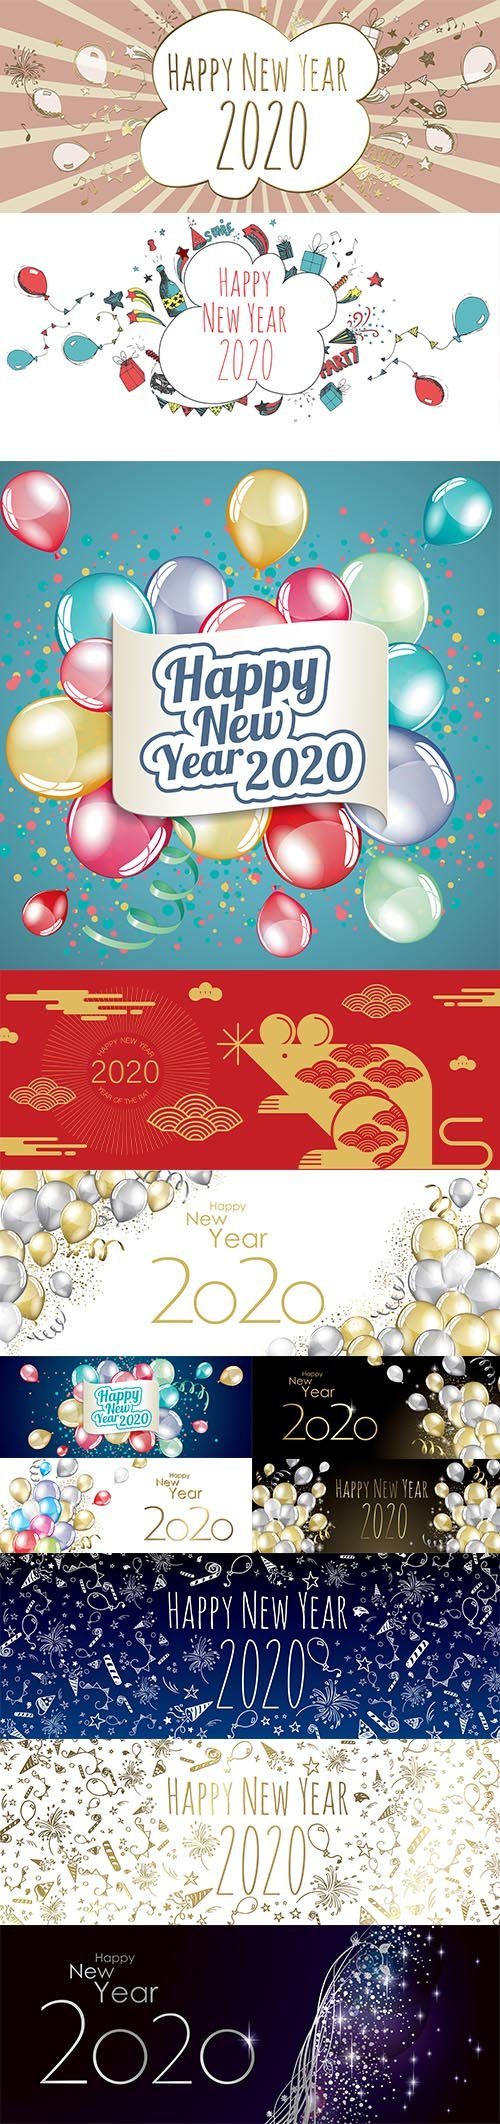 Merry Christmas and Happy New Year 2020 Illustrations Vector Set 3